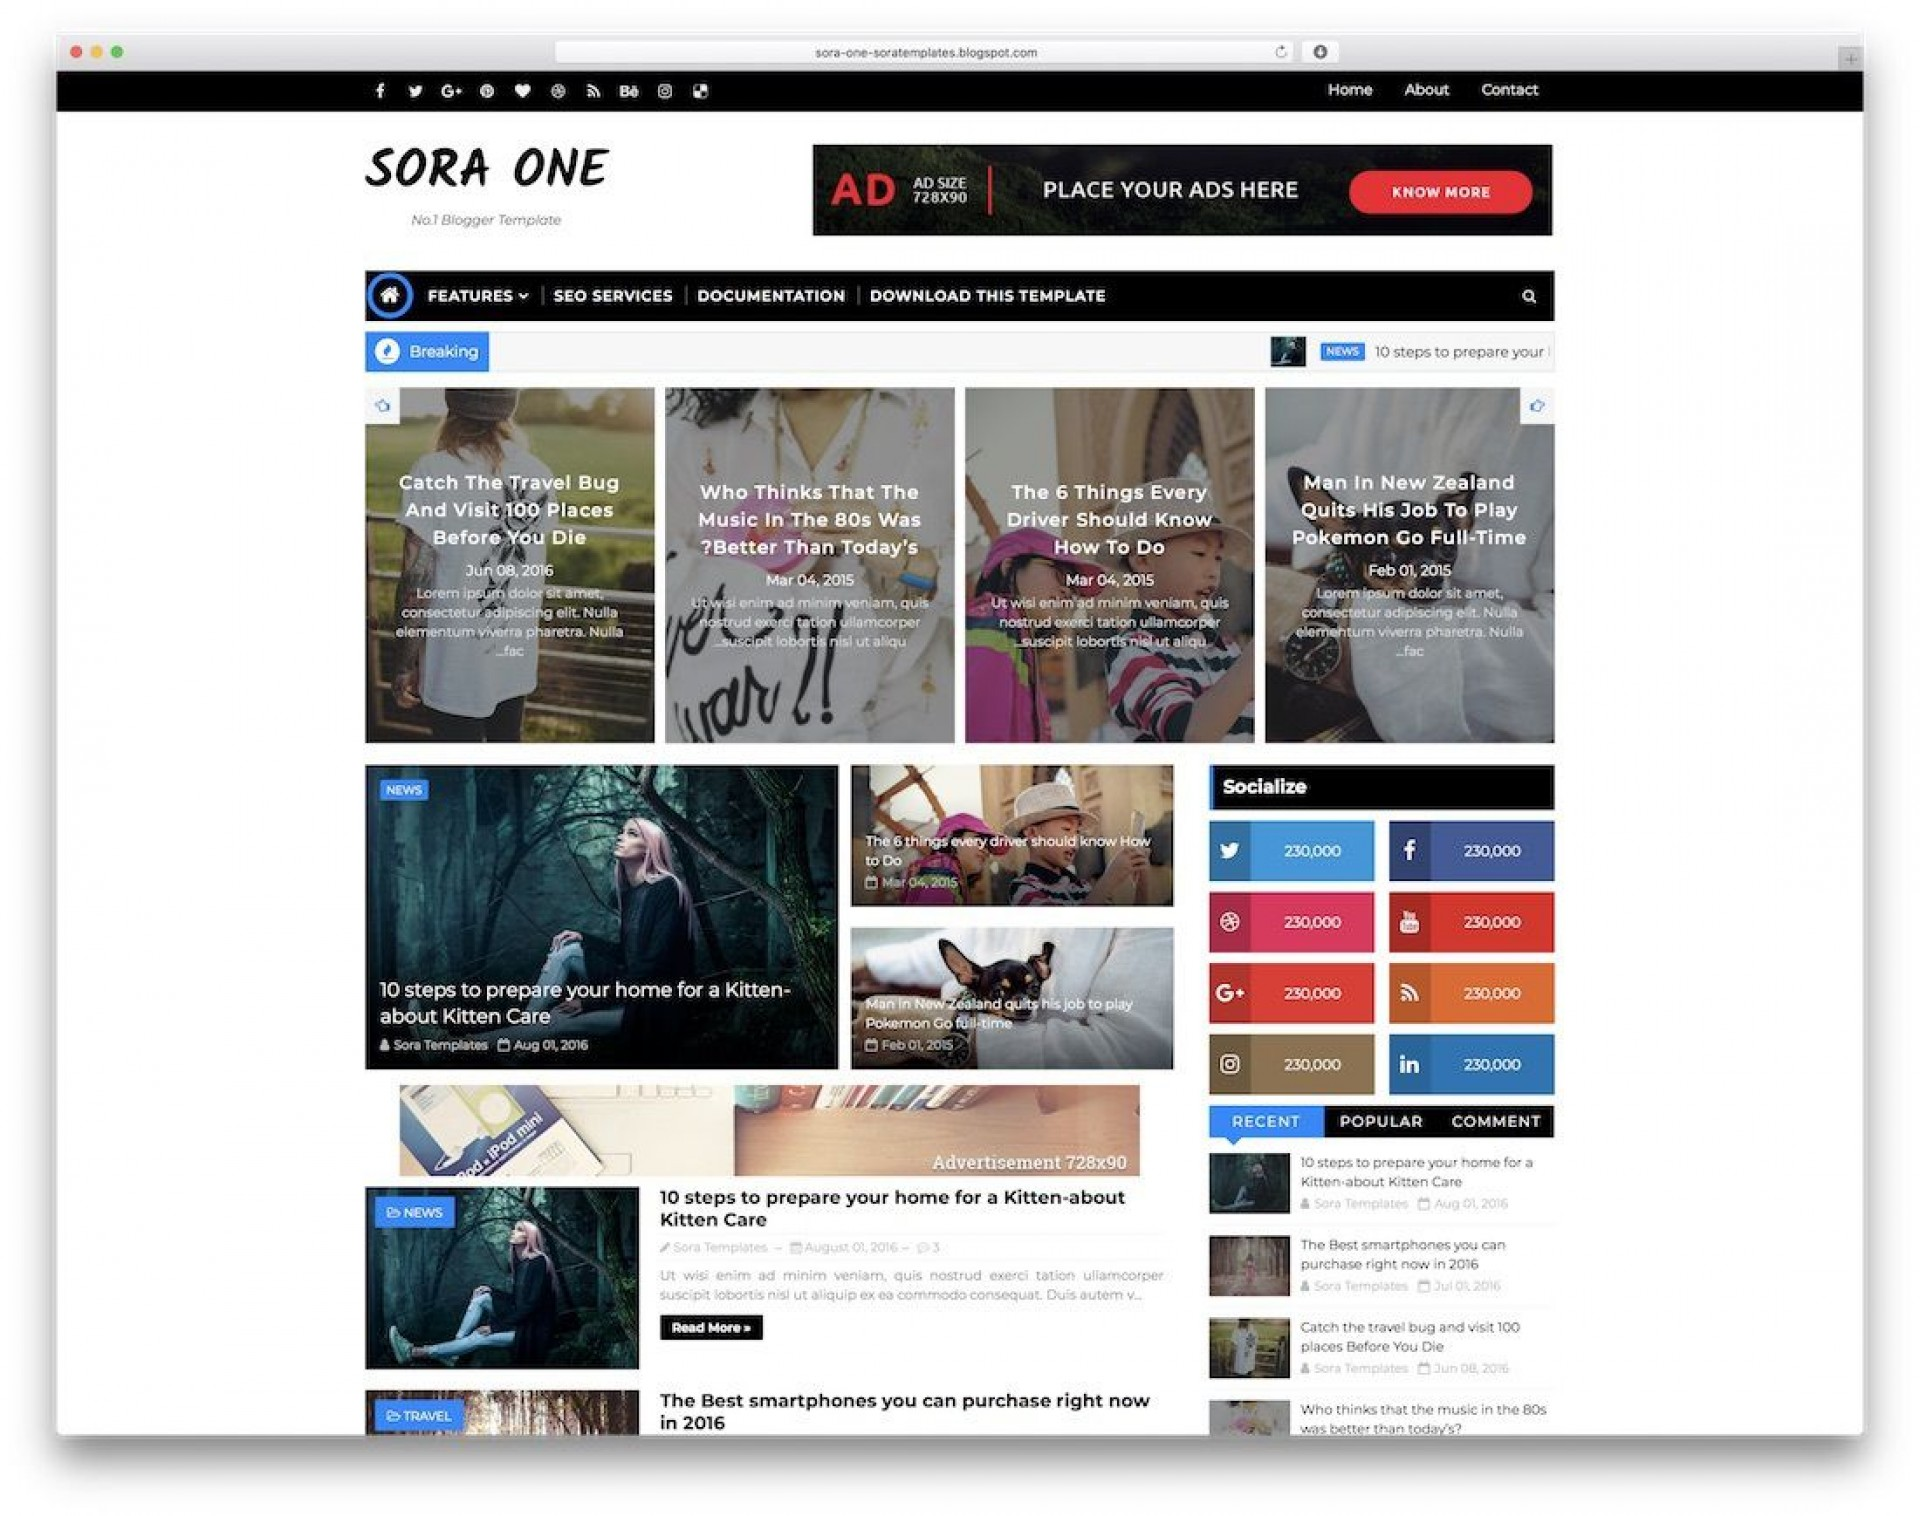 009 Unique Top Free Responsive Blogger Template Image  Templates Best For Education 2020 20191920